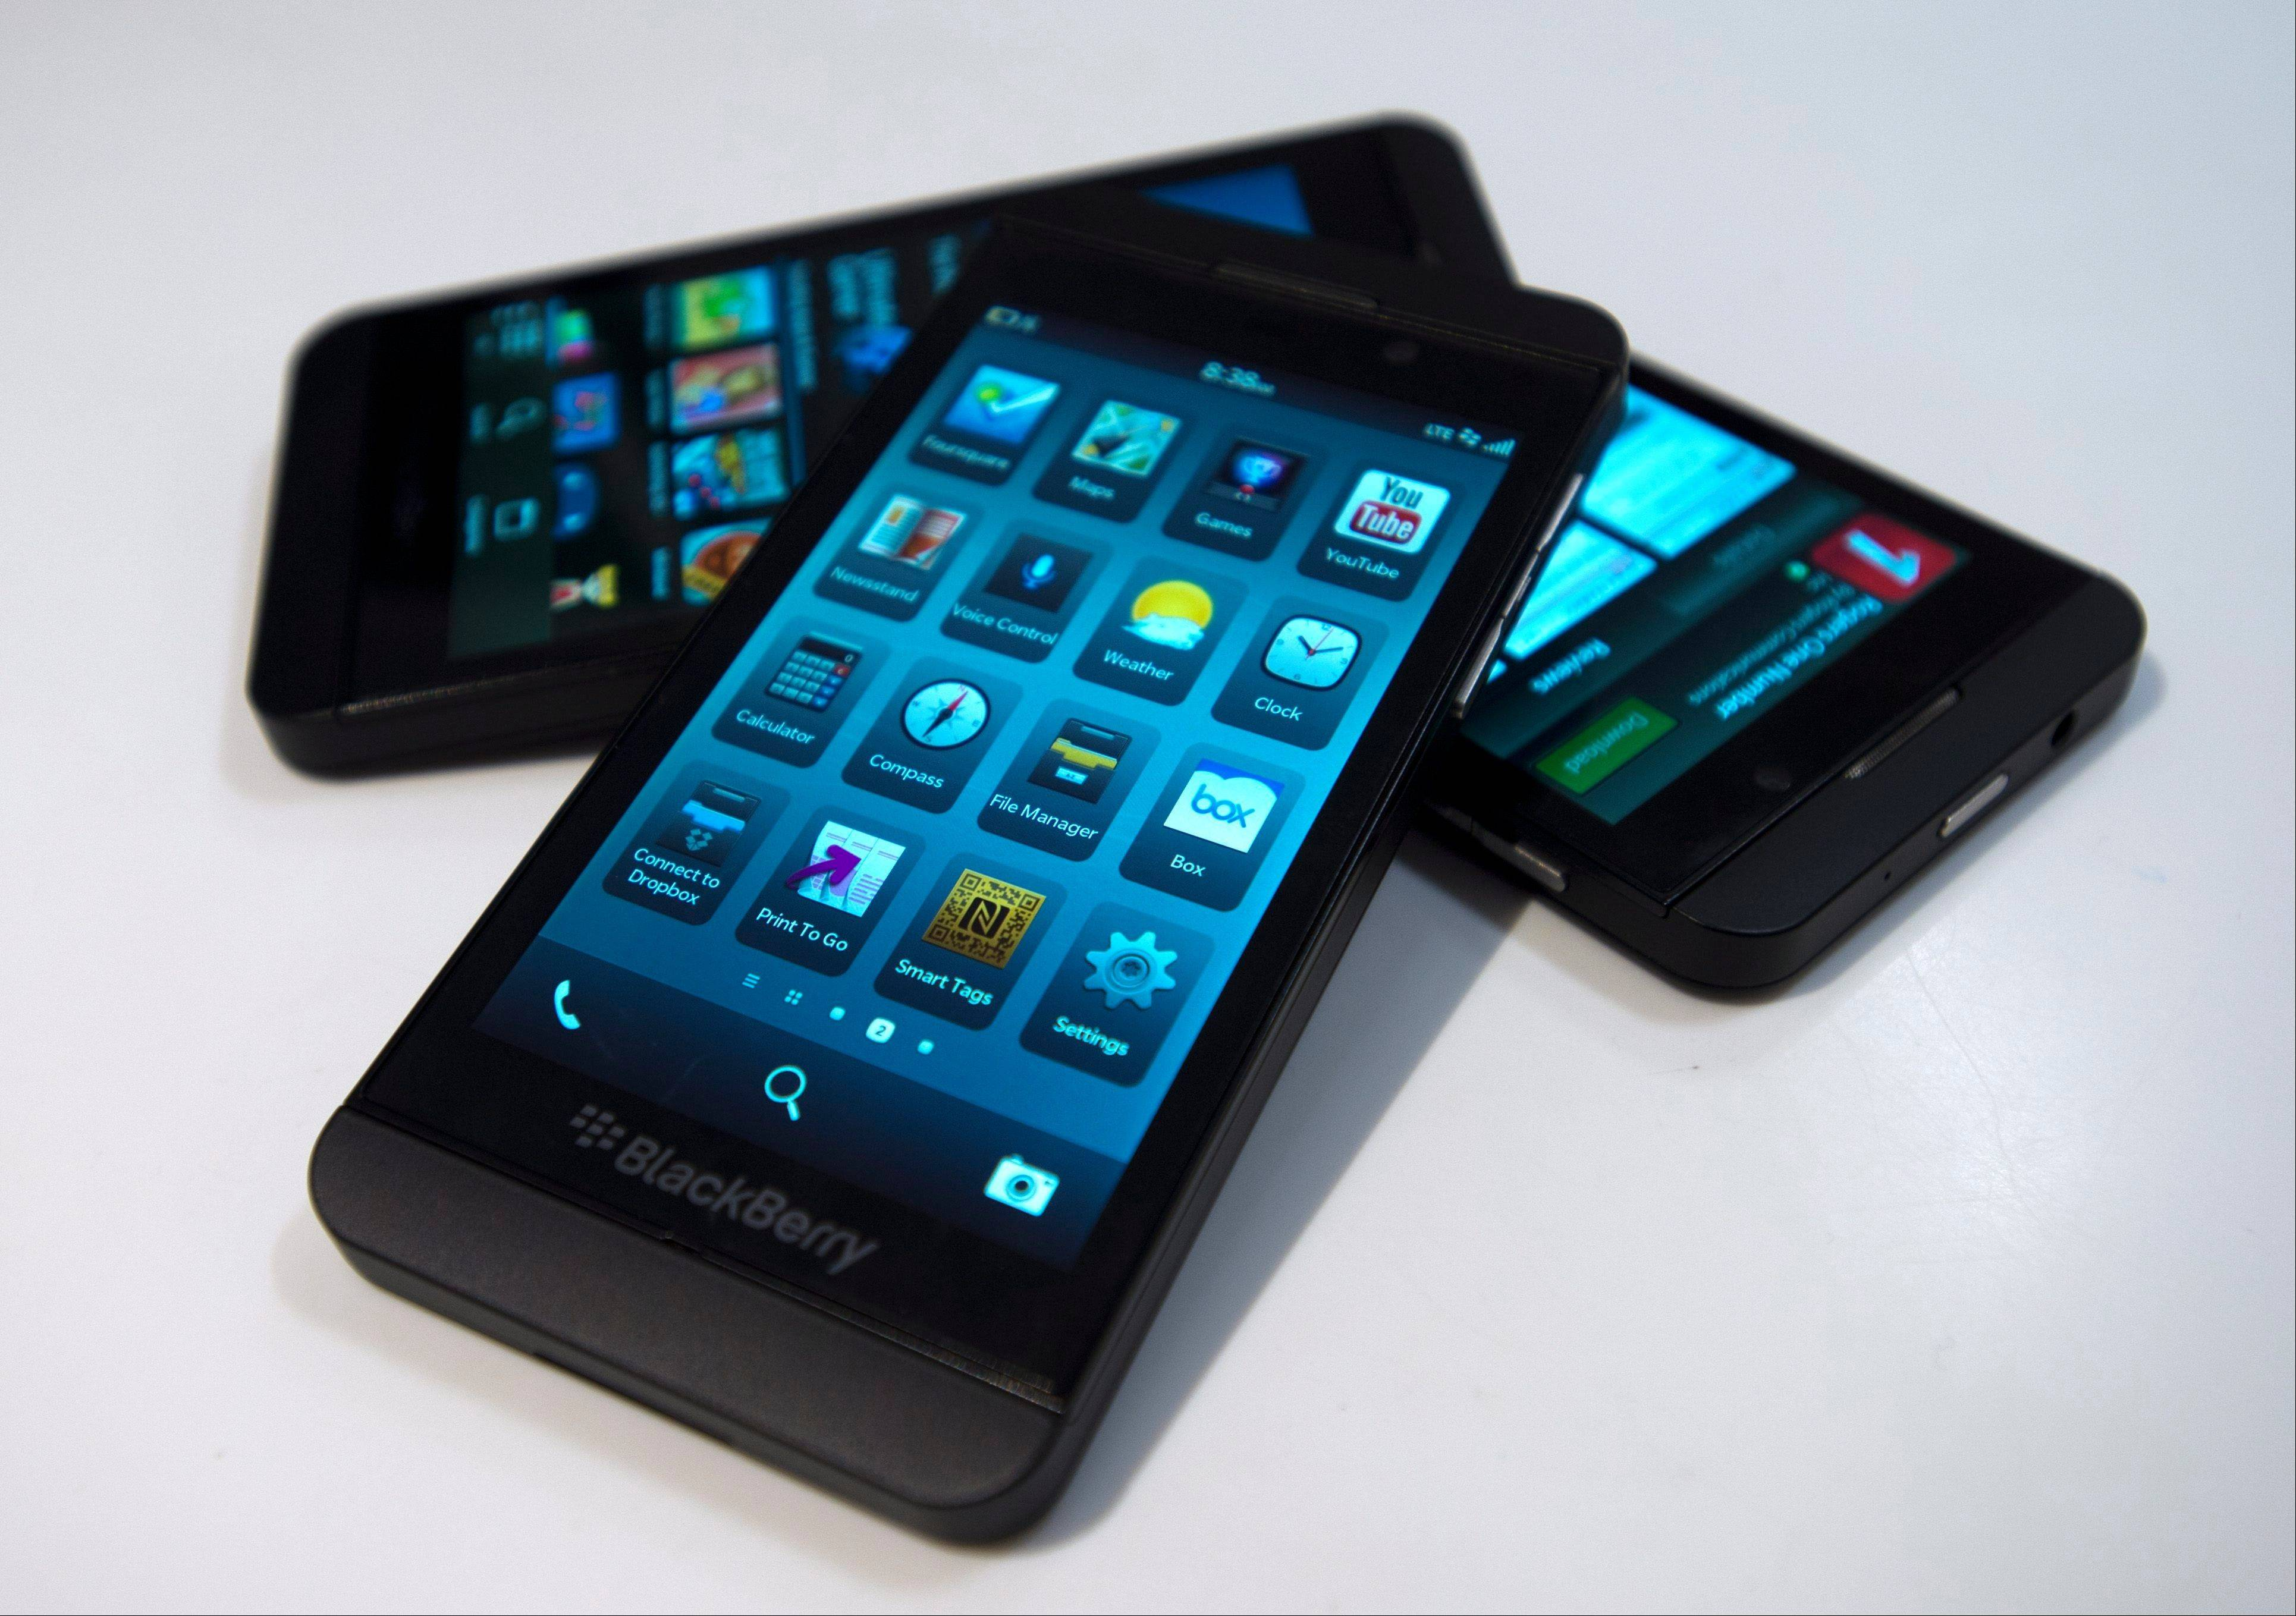 T-Mobile is aiming to be the first American carrier to role out the new BlackBerry Z10.